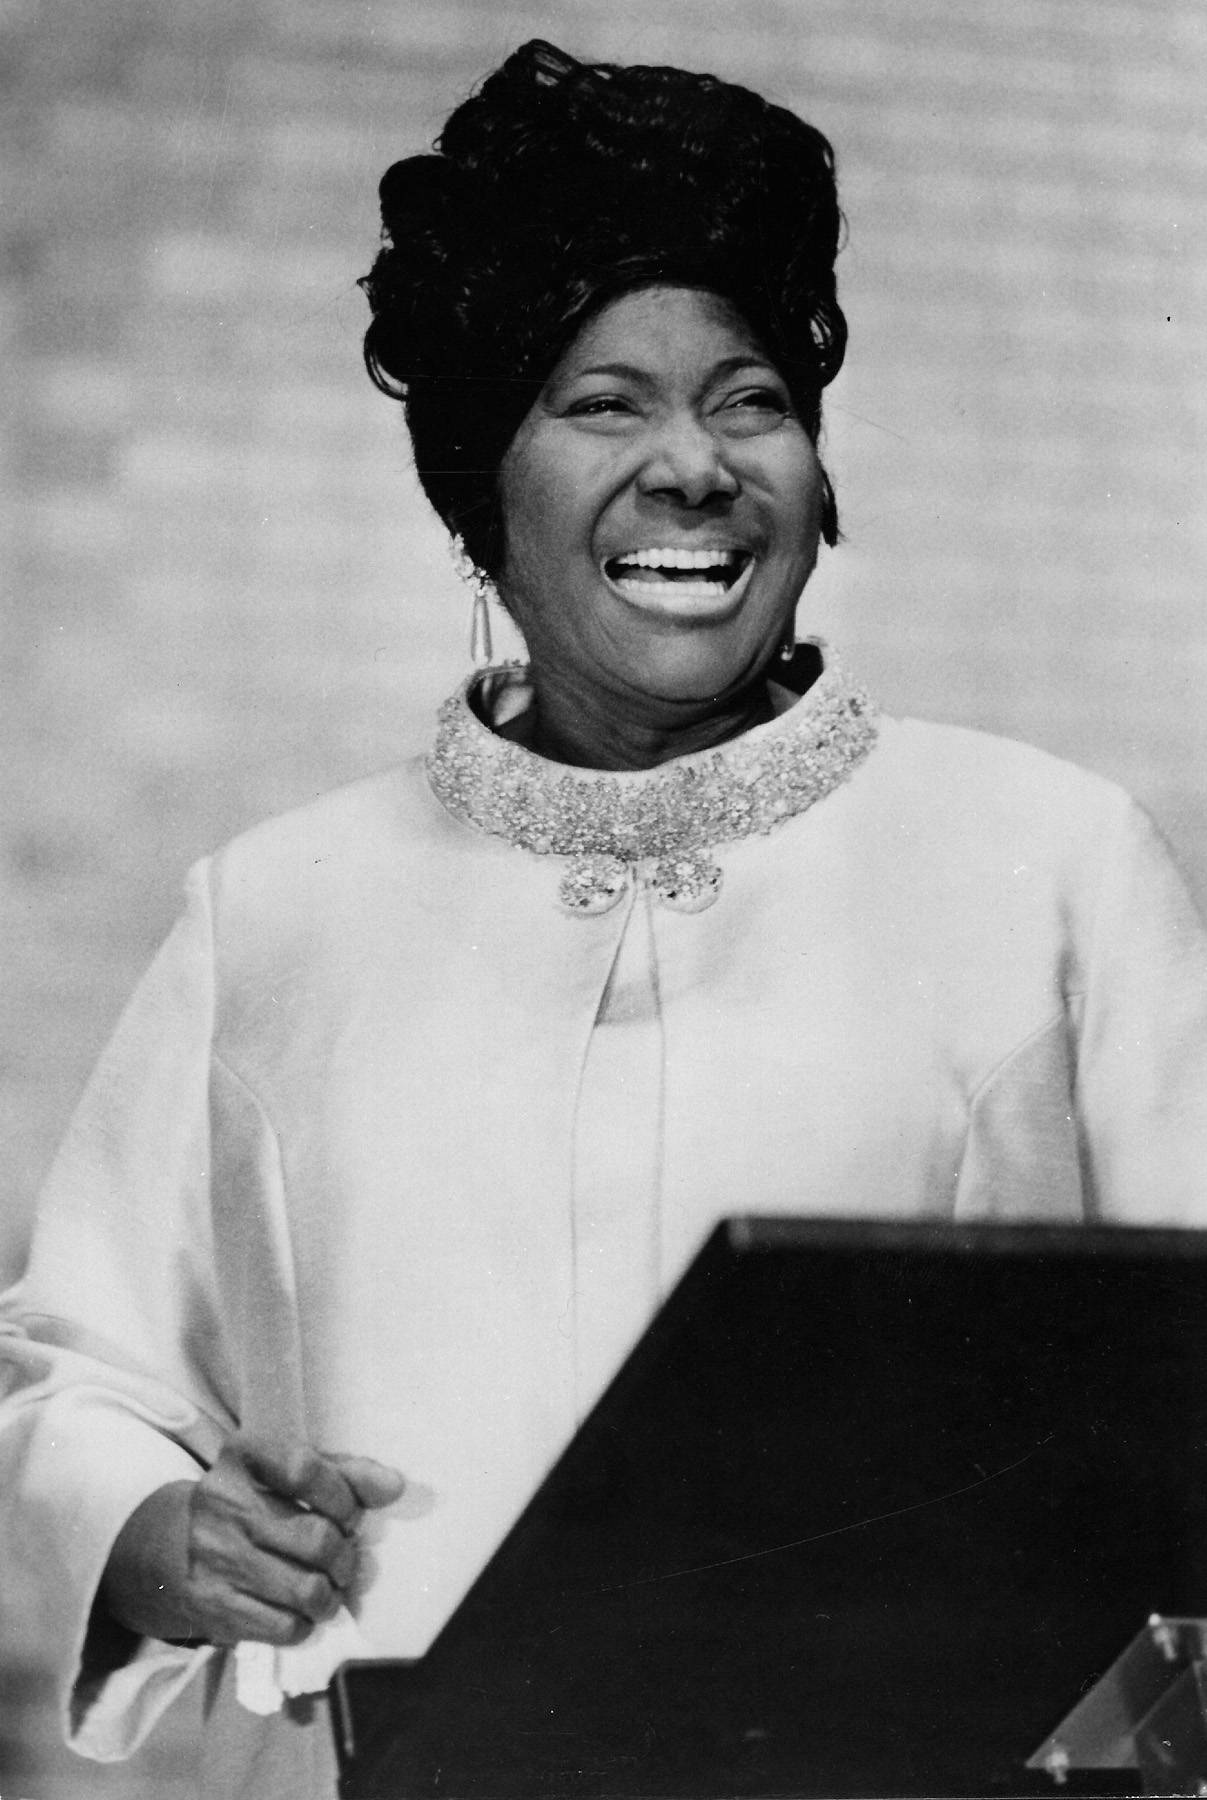 Mahalia Jackson - Mahalia Jackson was regarded as one of the most influential gospel singers in the world. Jackson performed ?I Been Buked and I Been Scorned? beforeMartin Luther King Jr.gave his speech at theMarch on Washingtonfor Jobs and Freedomin 1963.(Photo: Keystone/Getty Images)